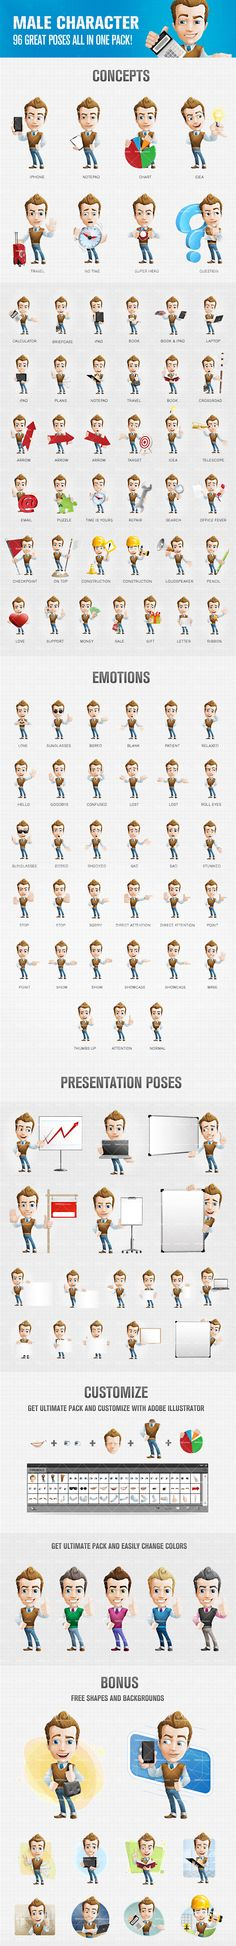 Male cartoon character presented in 96 poses and moods. That great amount of postures will come in handy for any situation. We have designed a male cartoon c